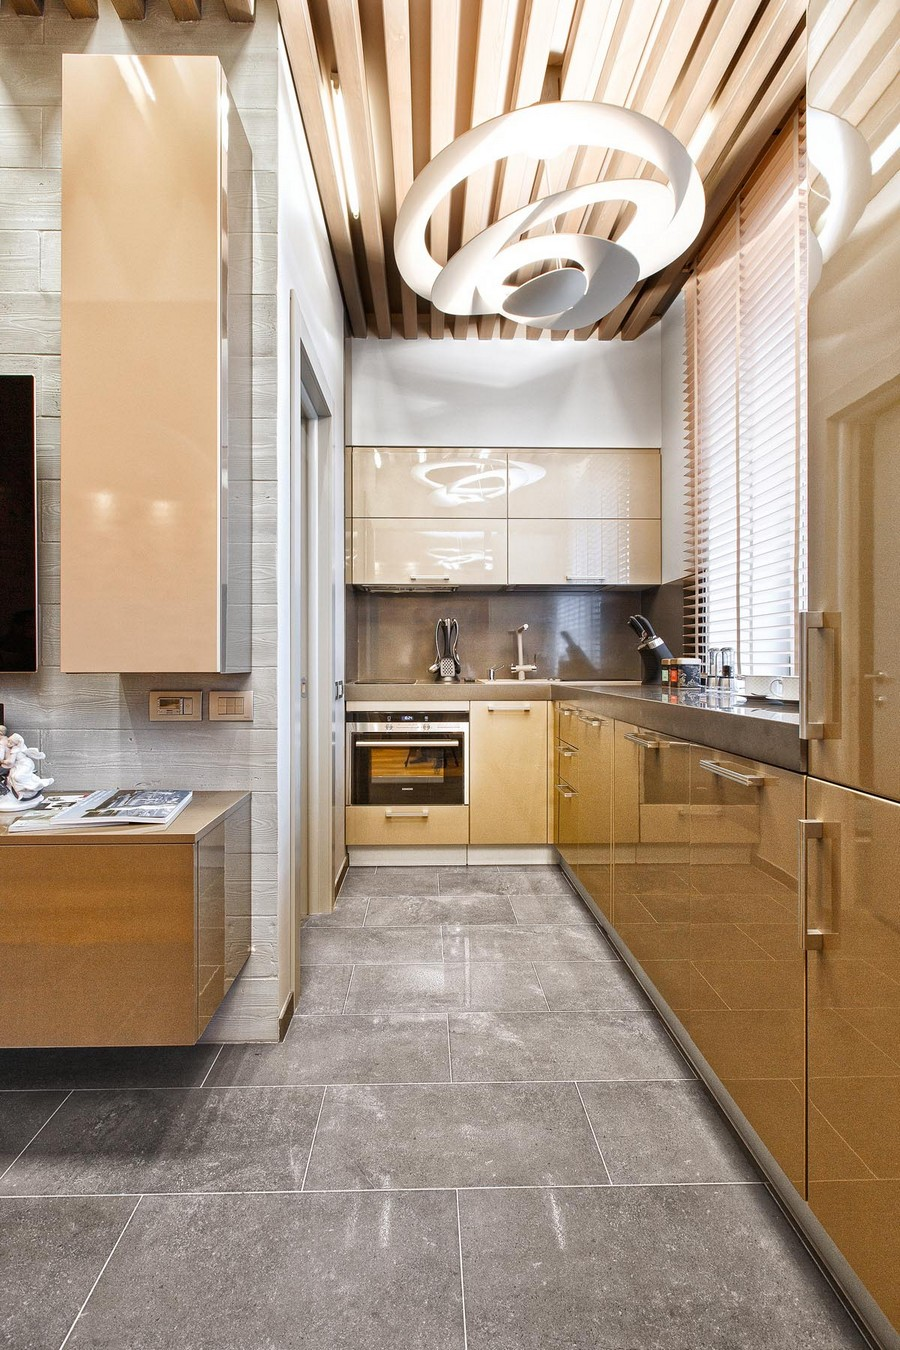 8-1-one-room-apartment-interior-design-ideas-light-brown-glossy-kitchen-cabinets-white-top-cabinets-gray-ceramic-floor-tiles-ceiling-wooden-planks-decor-geometrical-lamp-wall-mounted-TV-rack